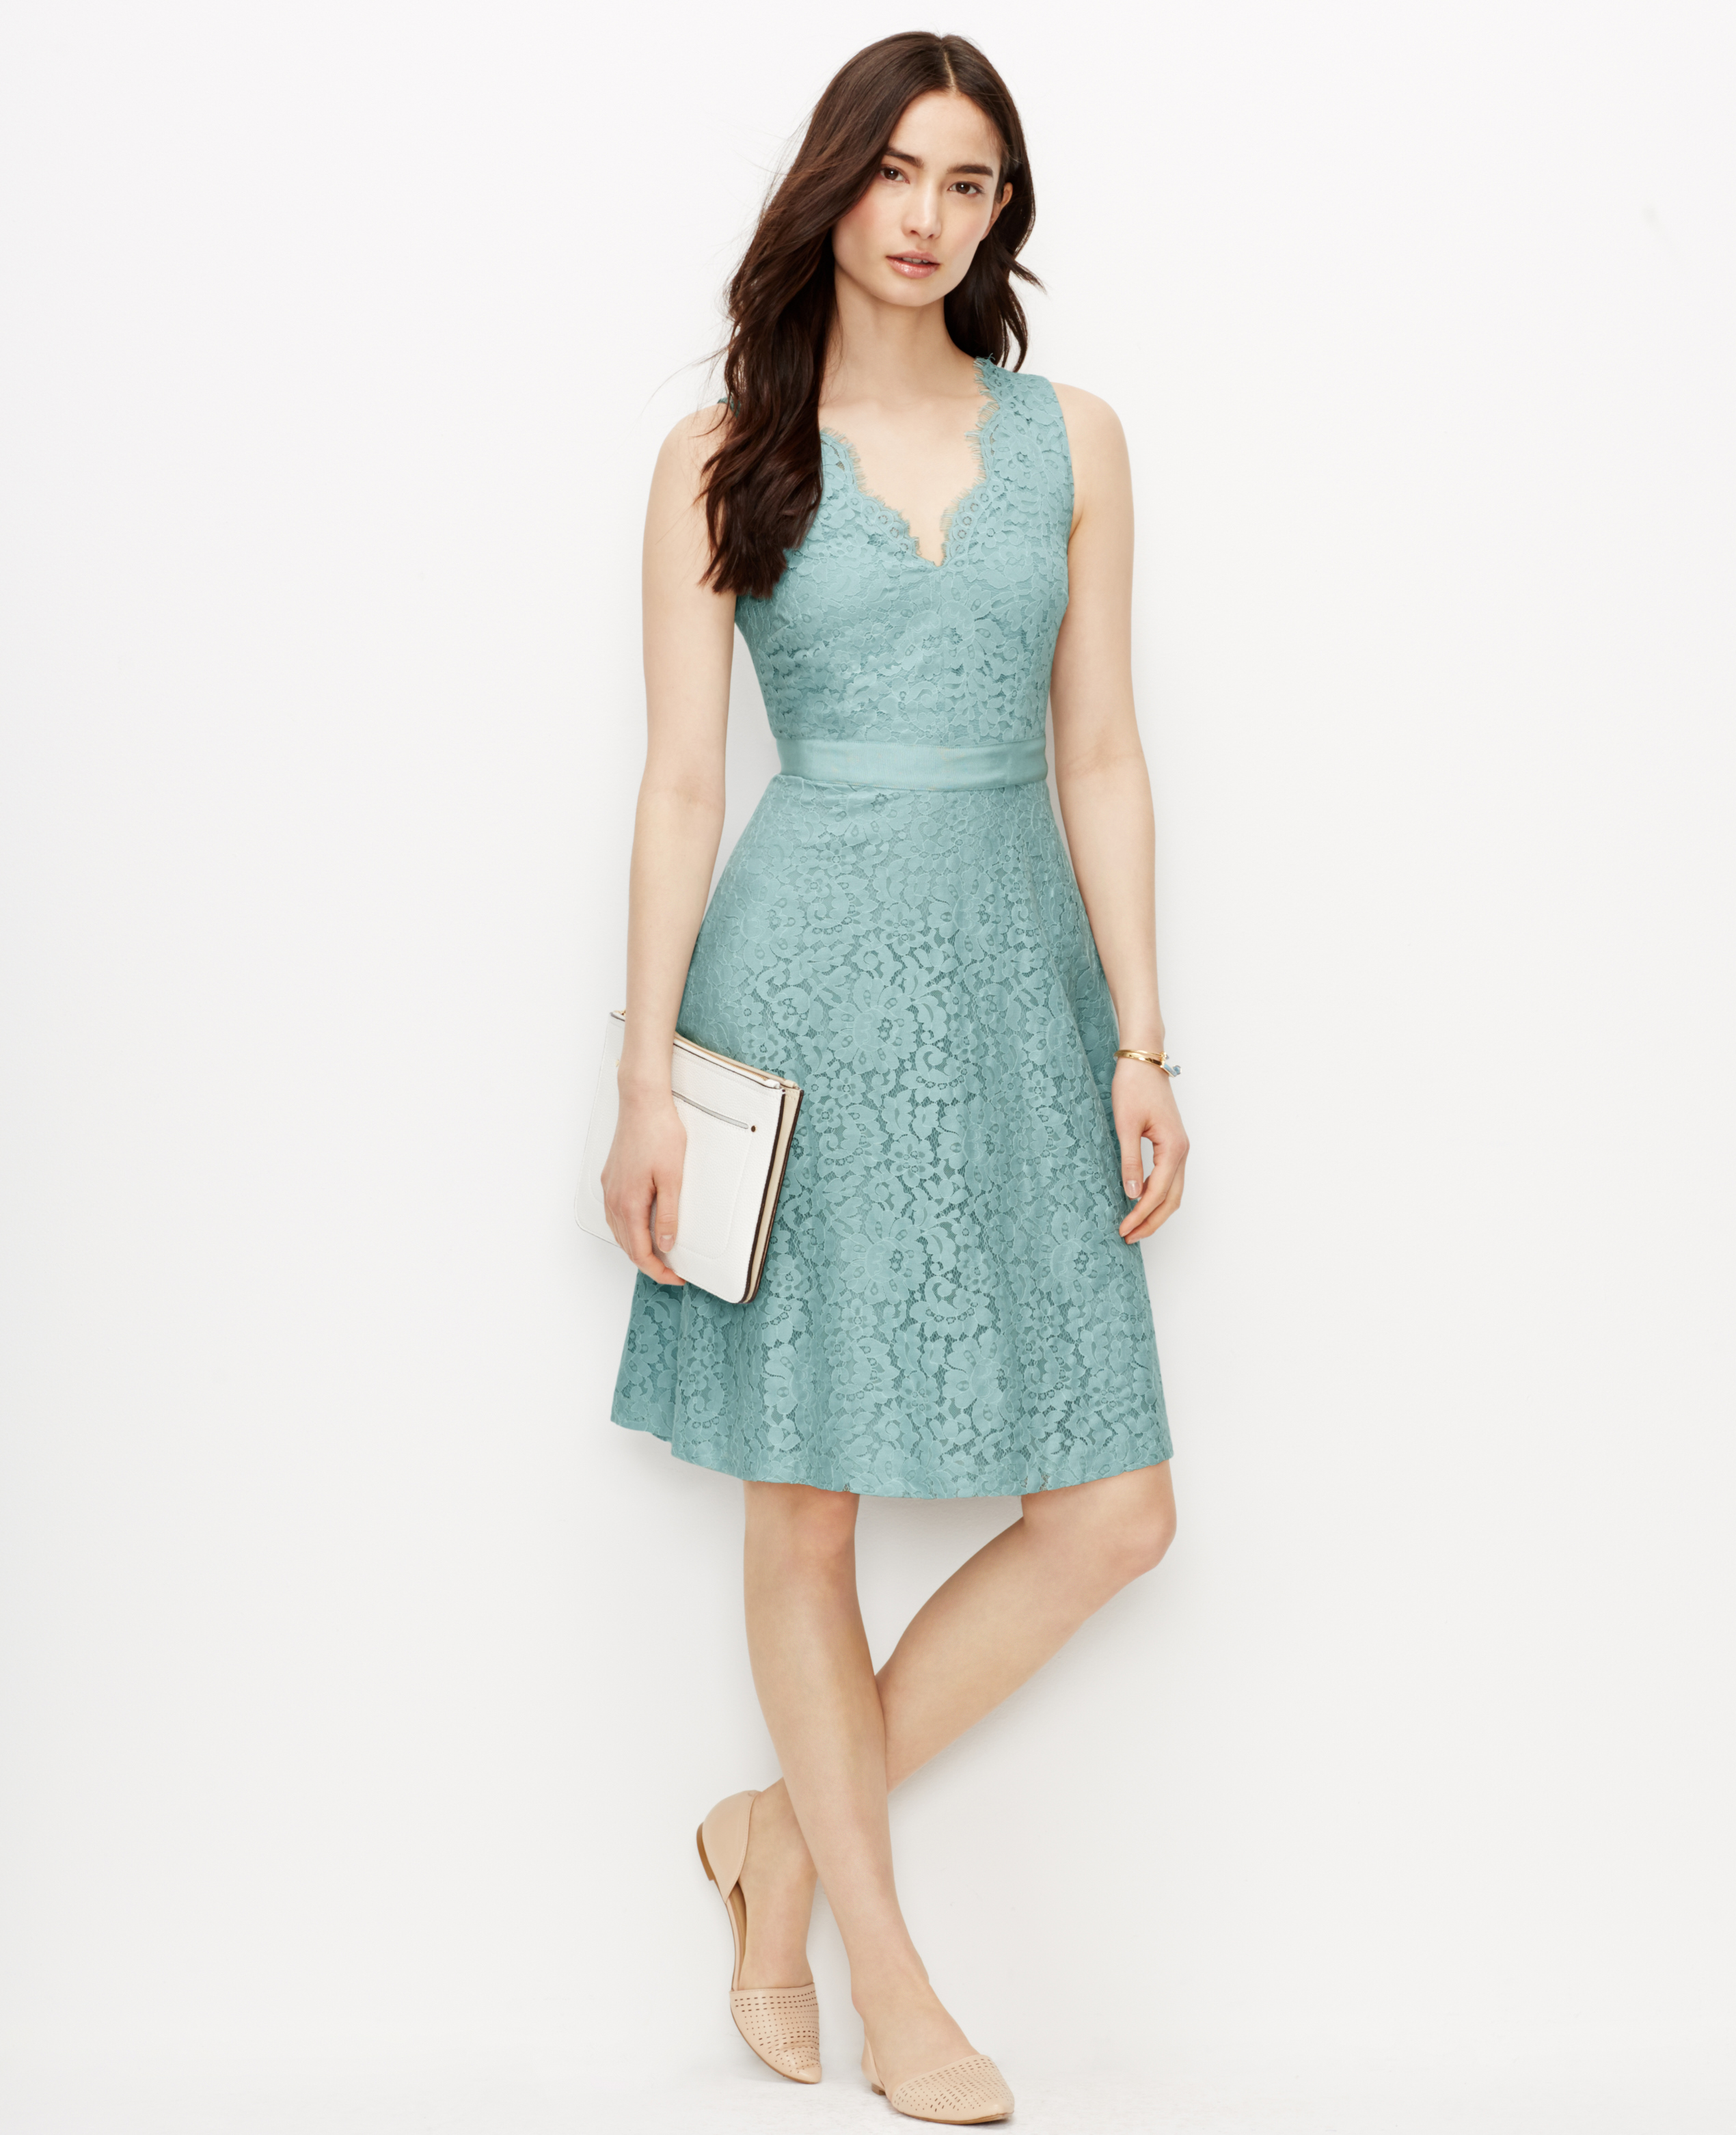 Charming Lord And Taylor Petite Cocktail Dresses Pictures ...